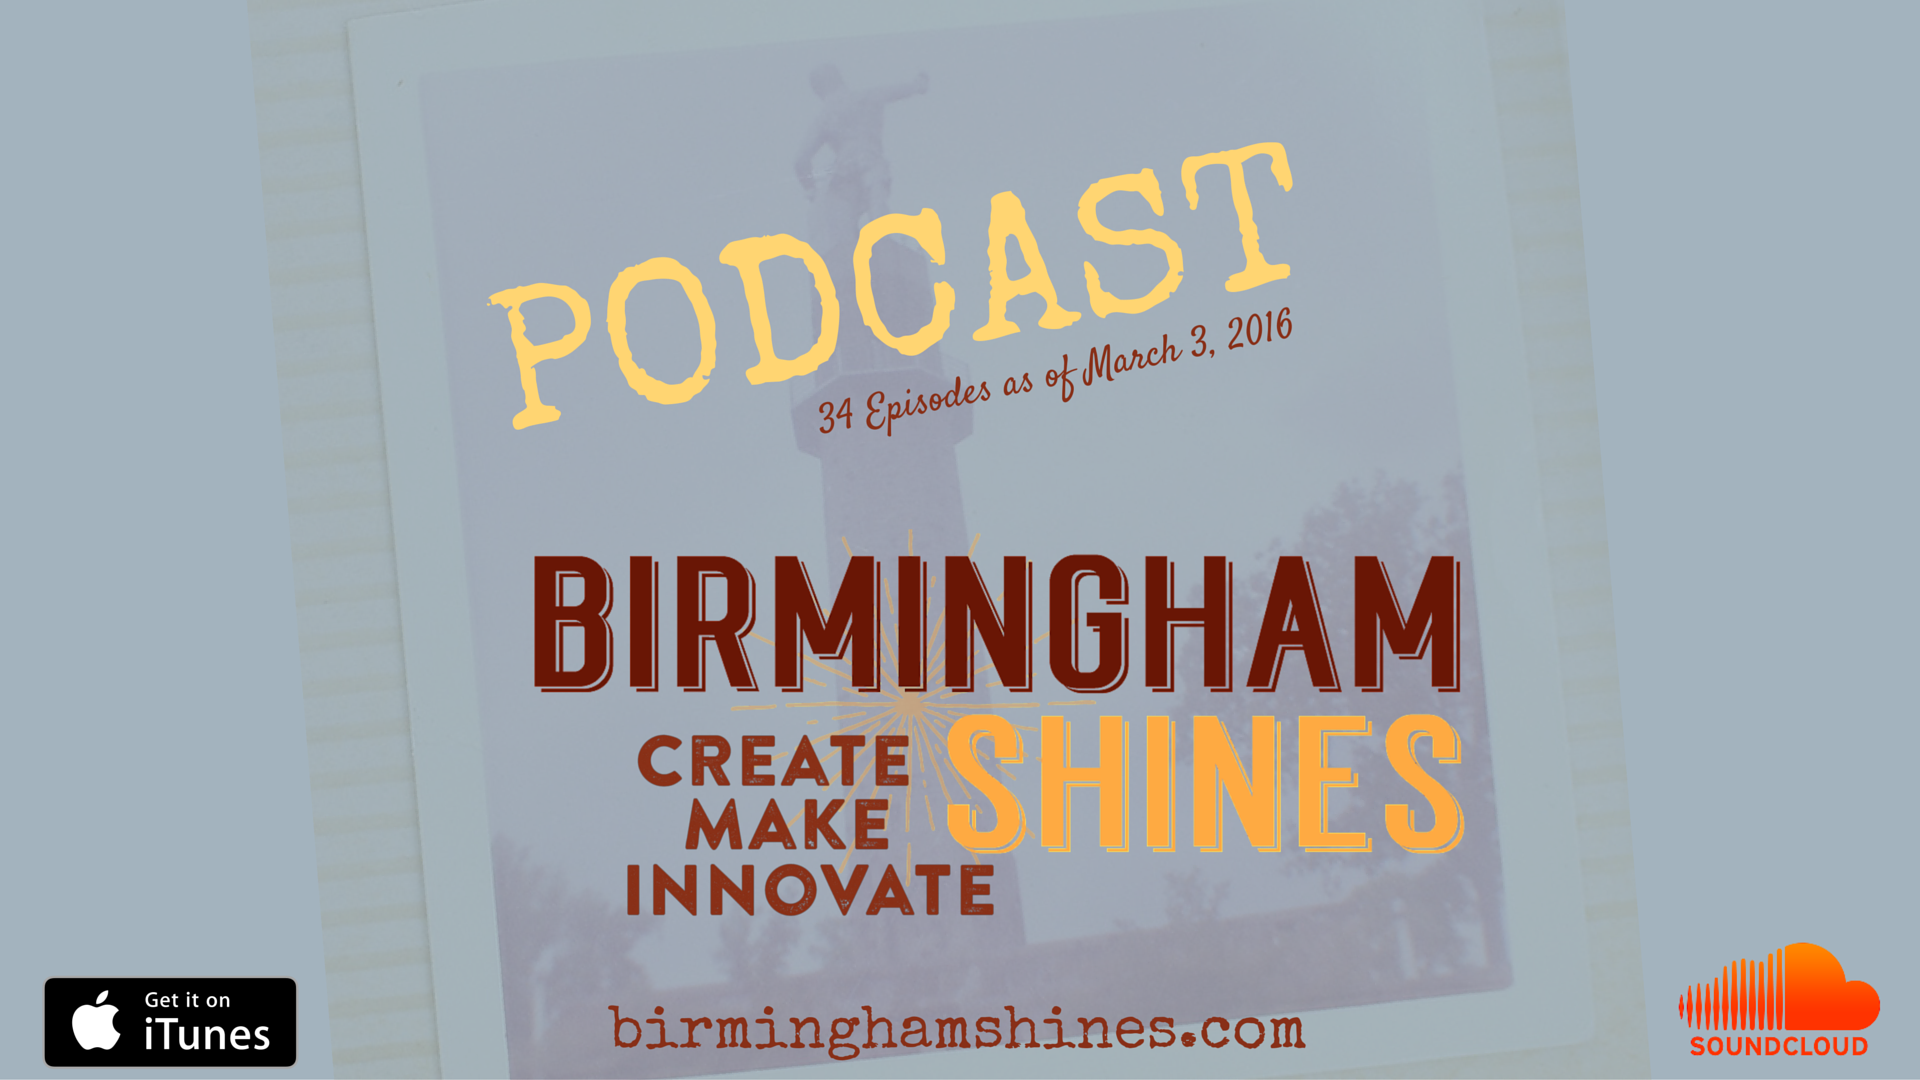 Birmingham Shines Podcast by Sheree Martin offers conversational profiles with the creators, innovators, makers and entrepreneurs of Birmingham, Alabama. 35 episodes are available as of March 10, 2016